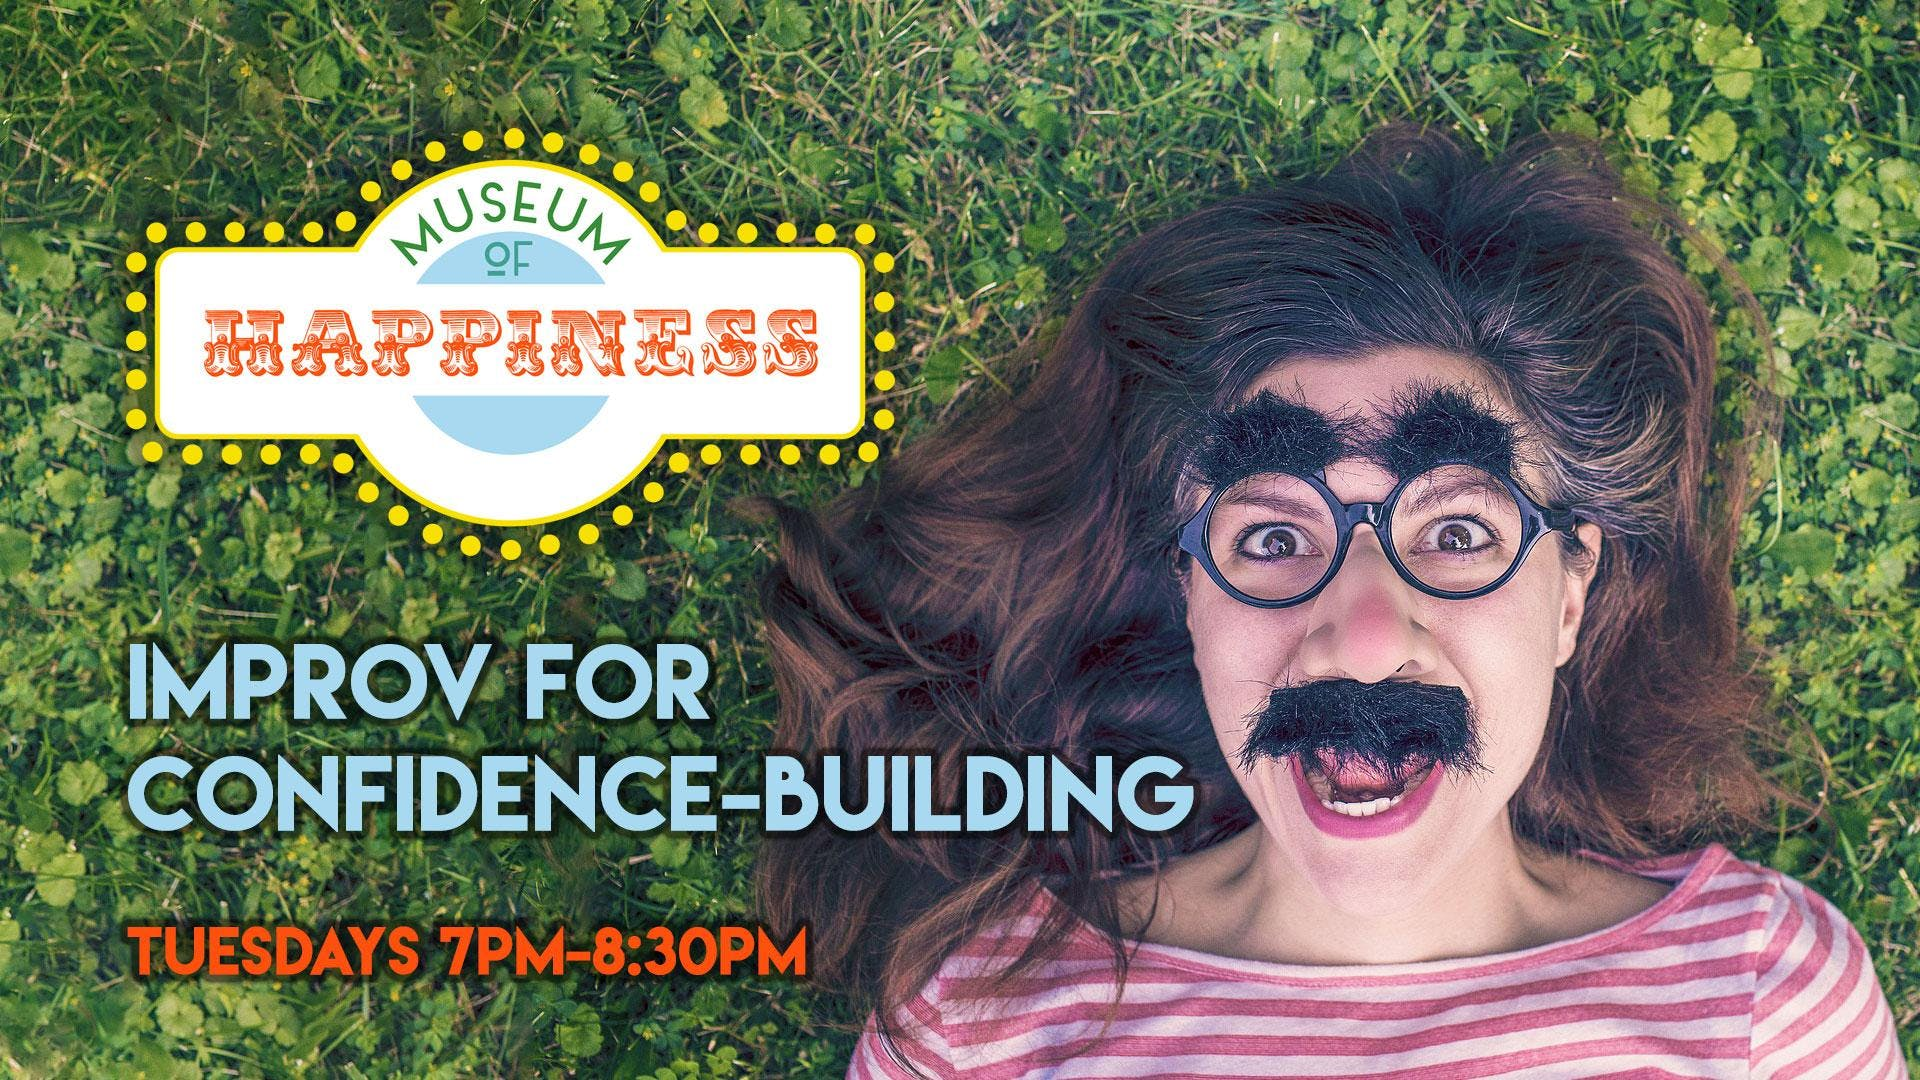 Improv for Confidence-building - Weekly Class